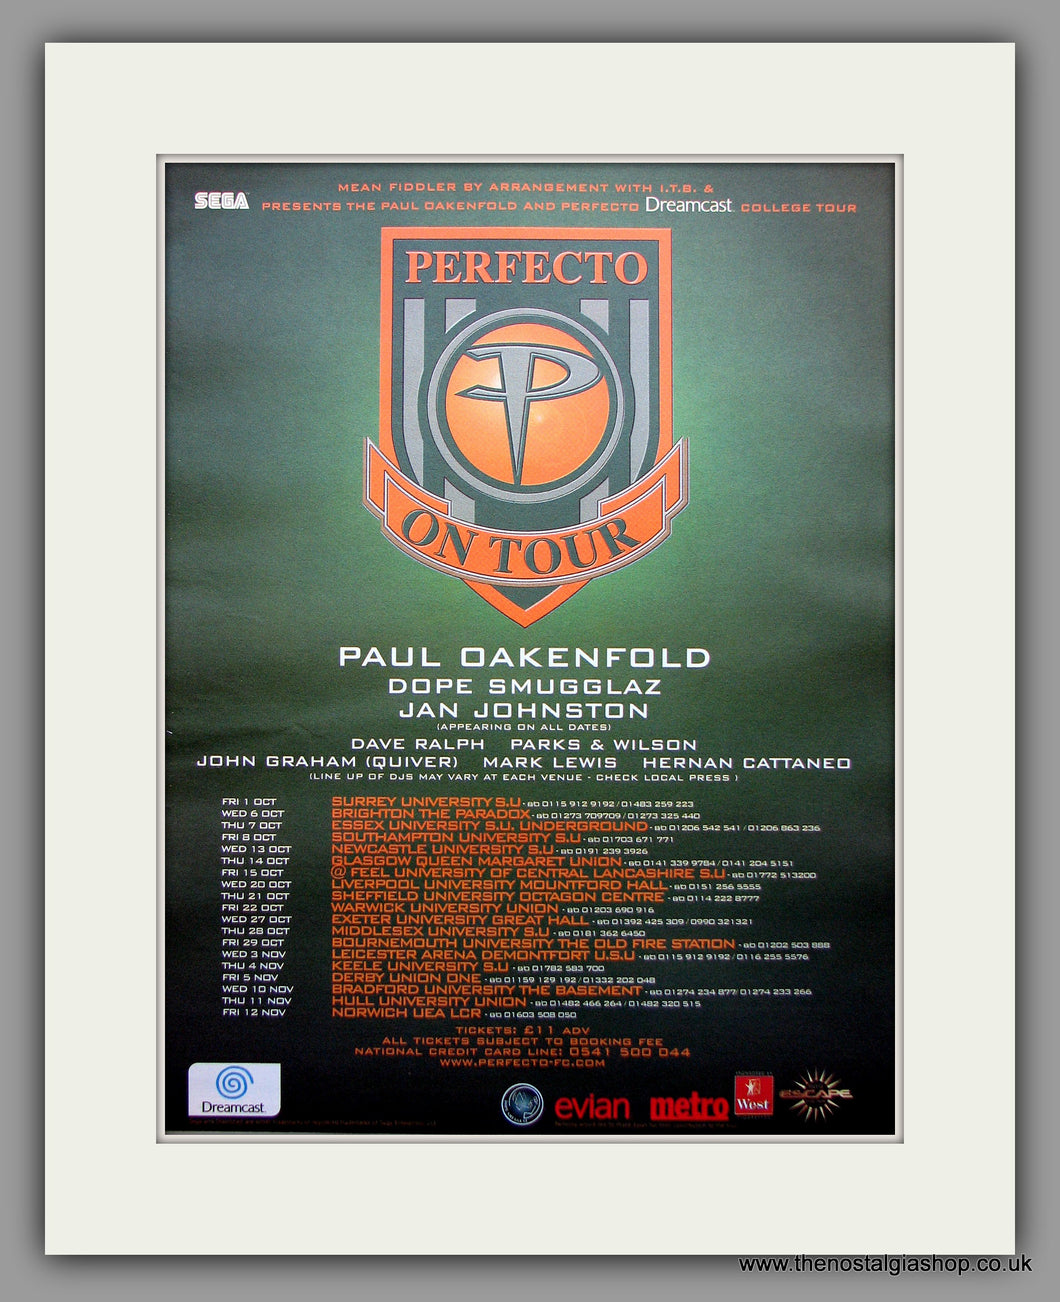 Perfecto On Tour - Tour Dates. Original Vintage Advert 1999 (ref AD10982)